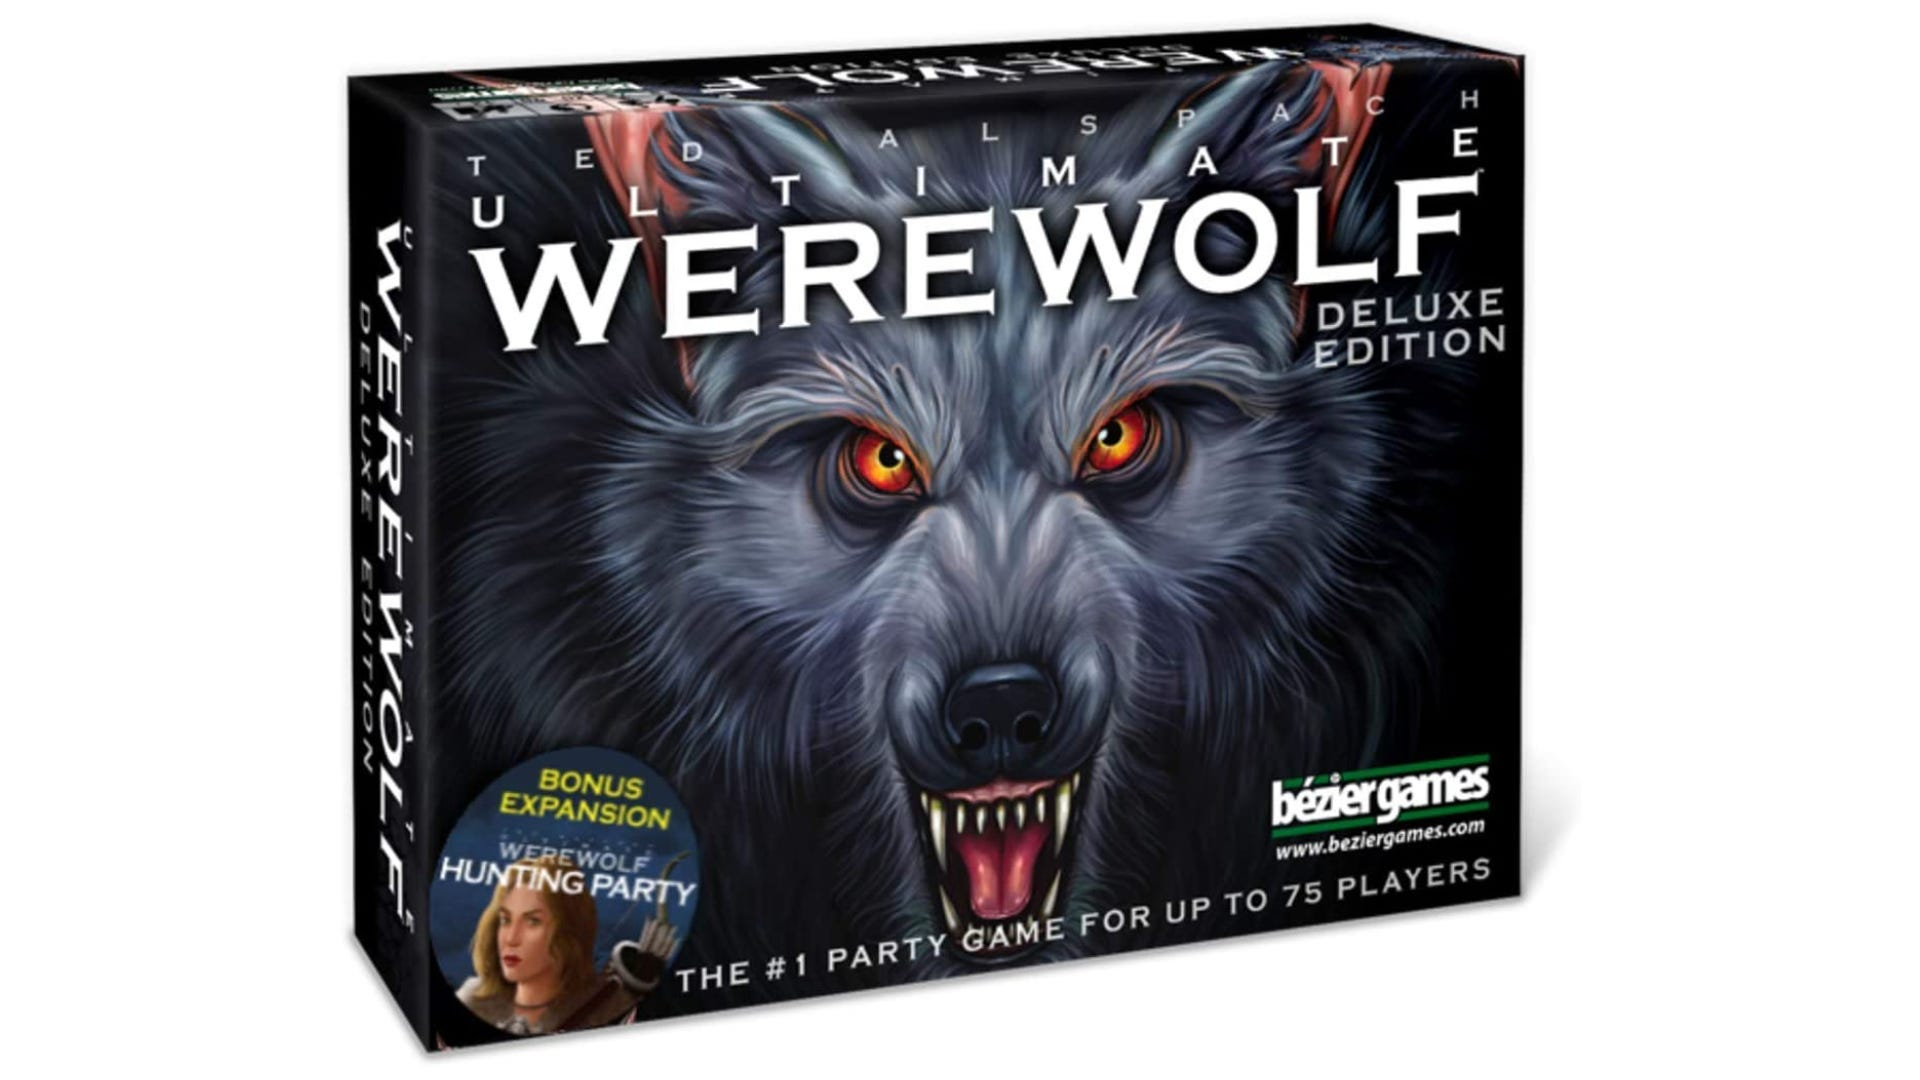 Ultimate Werewolf Deluxe Edition box art